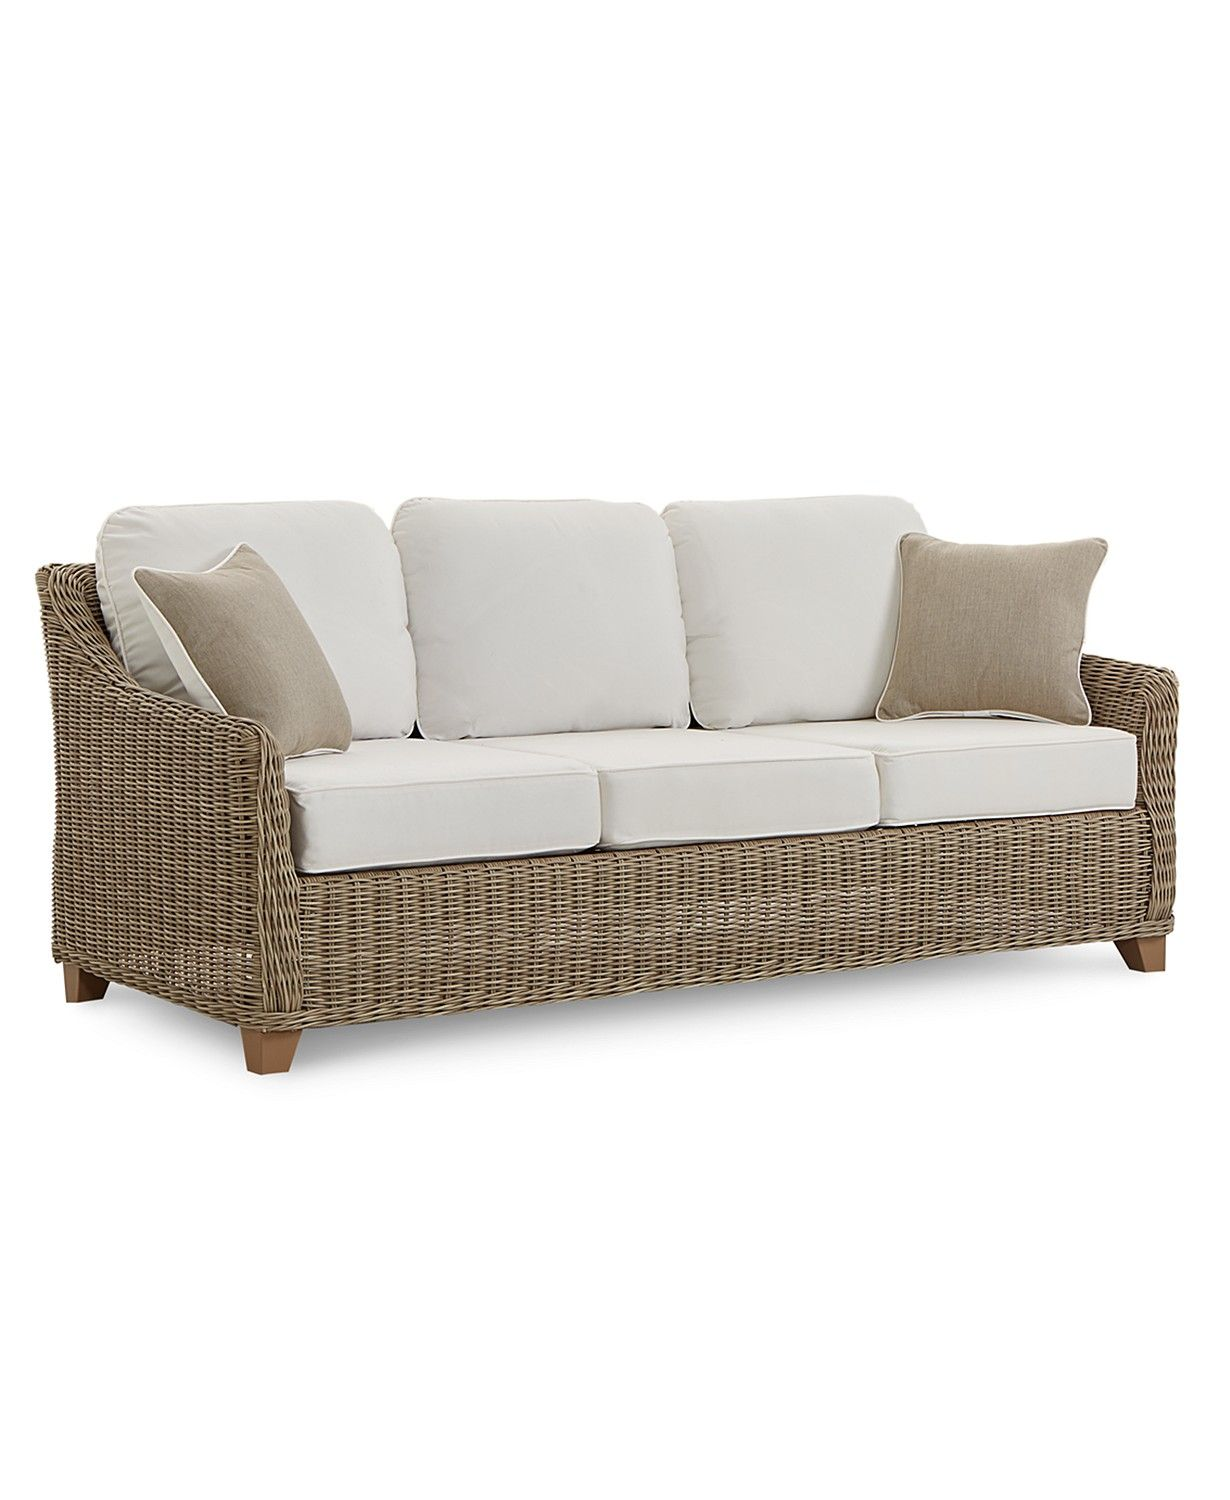 Furniture Willough Outdoor Sofa With Sunbrella Cushions Created For Macy S Reviews Furniture Macy S In 2021 Outdoor Furniture Sofa Outdoor Wicker Furniture Outdoor Sofa